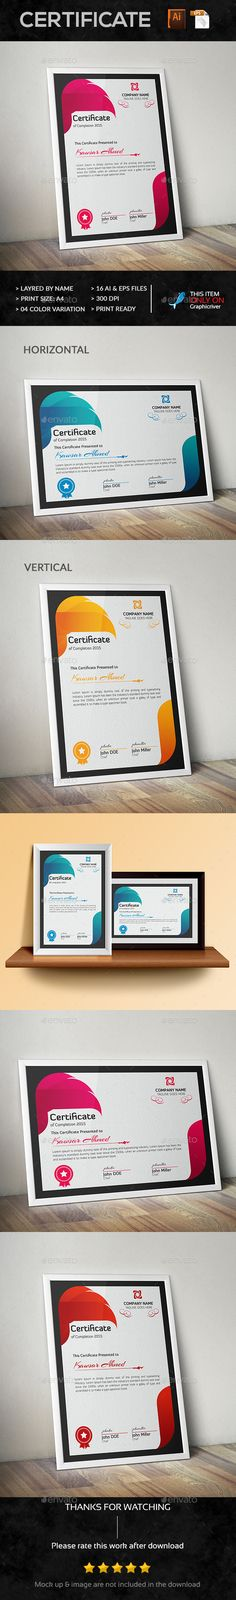 Certificate - Certificate Template Vector EPS, Vector AI. Download here: http://graphicriver.net/item/certificate/14297188?s_rank=78&ref=yinkira